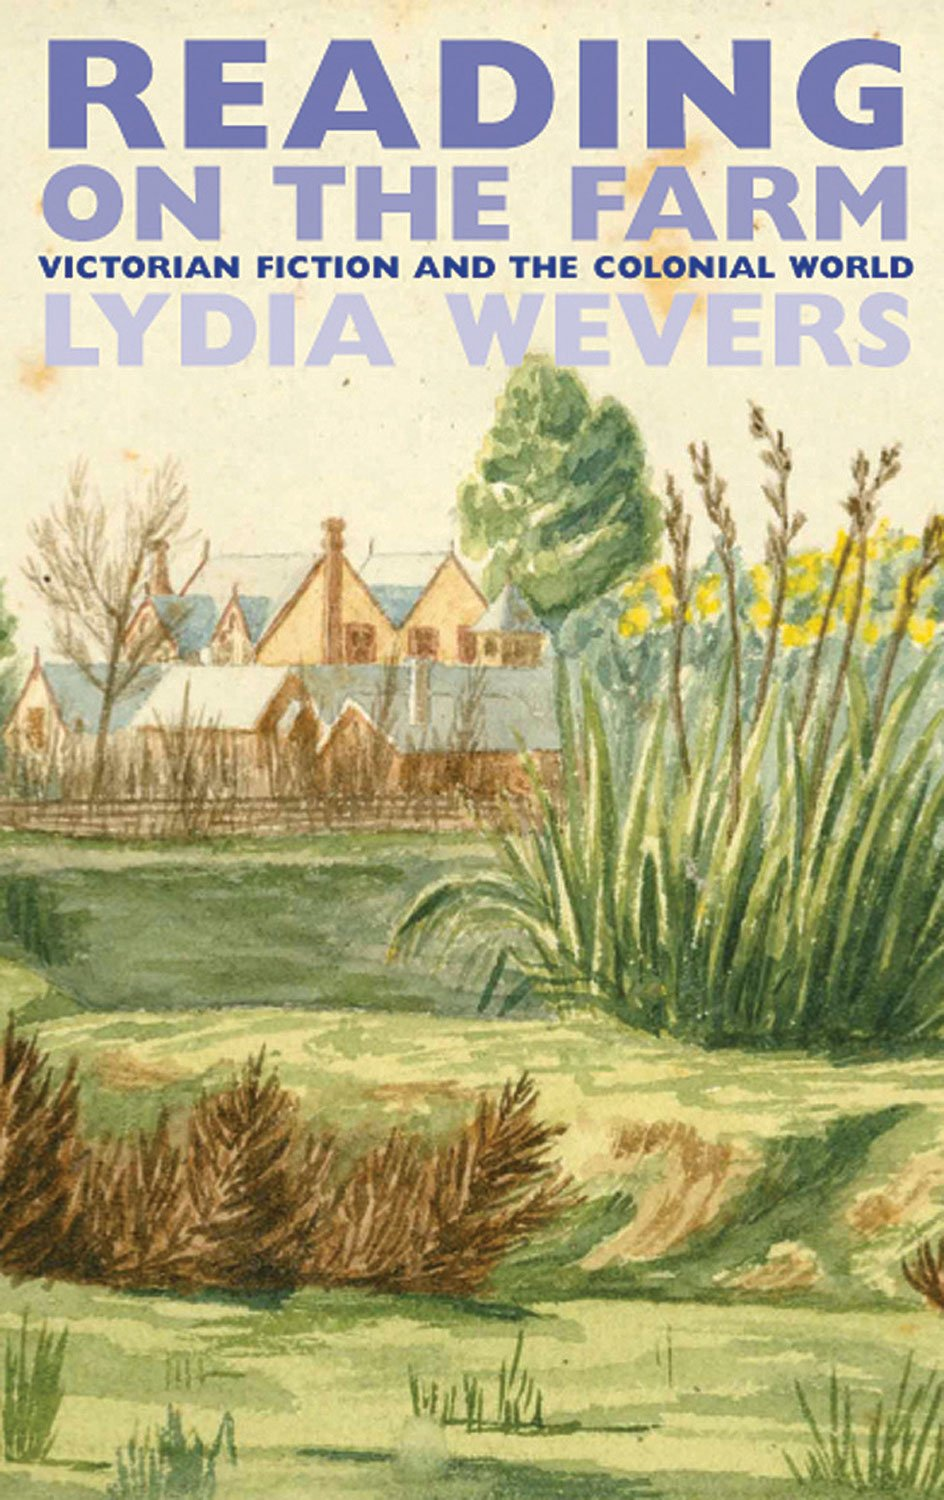 Reading on the Farm: Victorian Fiction and the